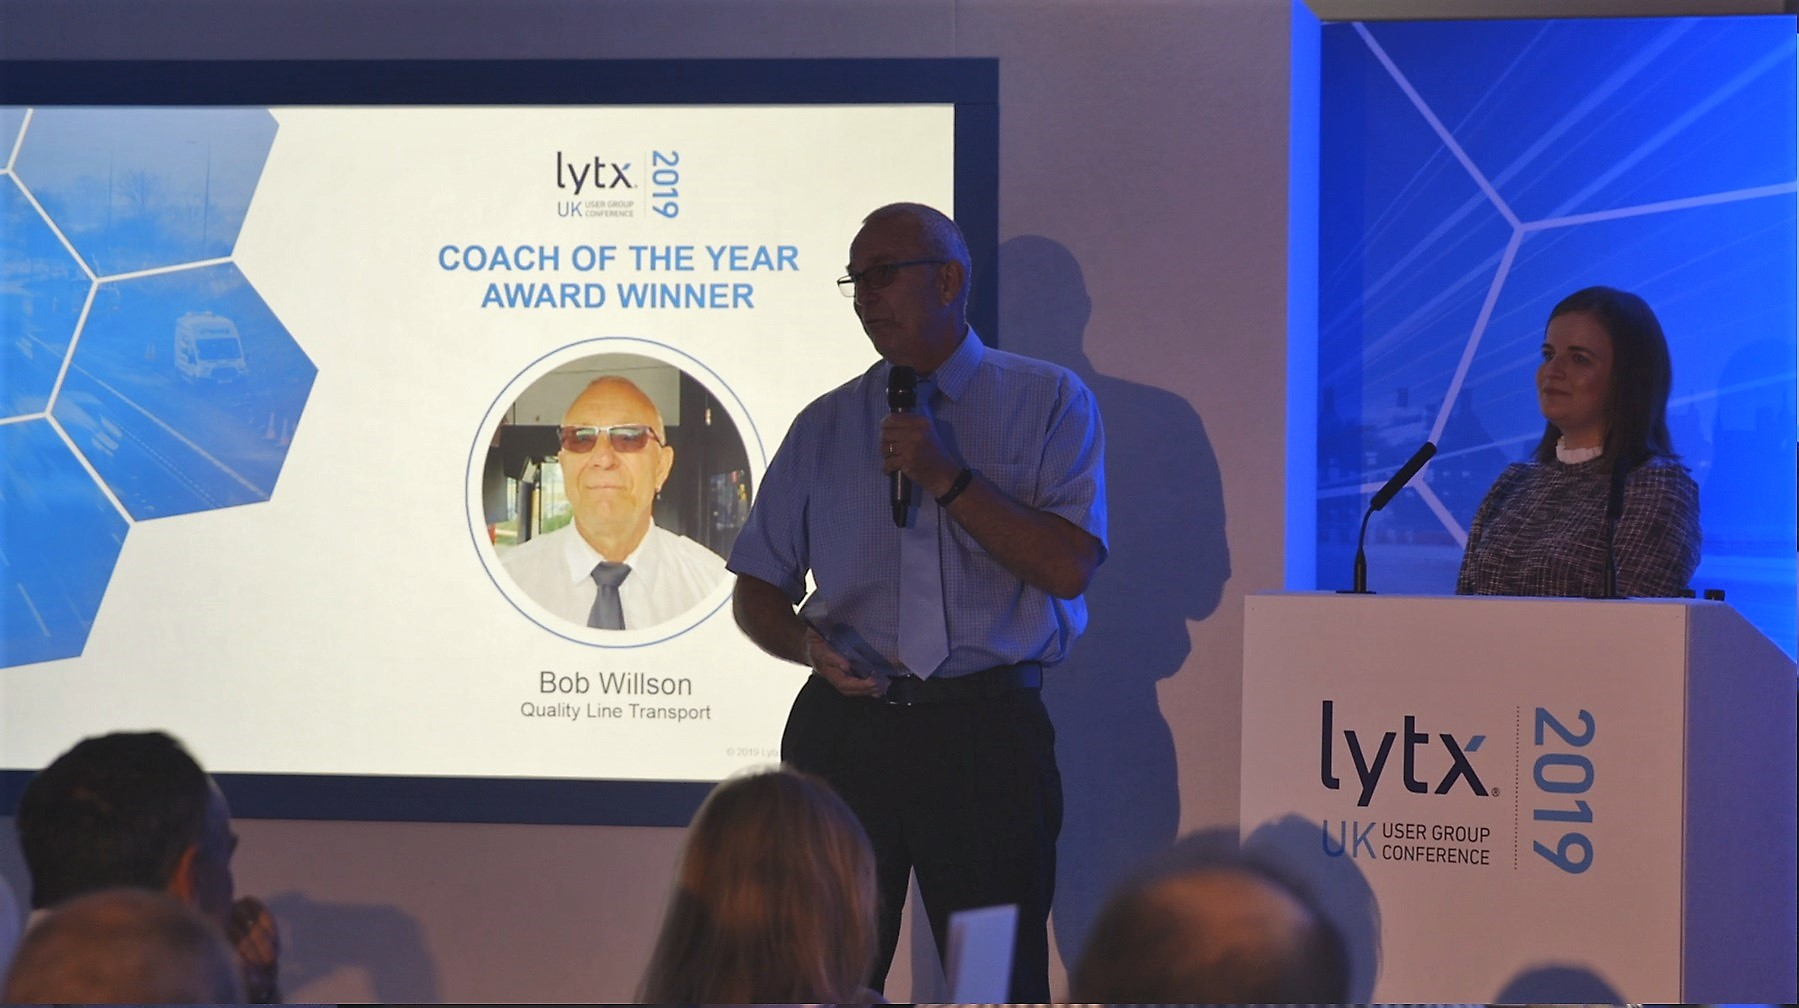 Lytx UK User Group Conference Coach of the Year